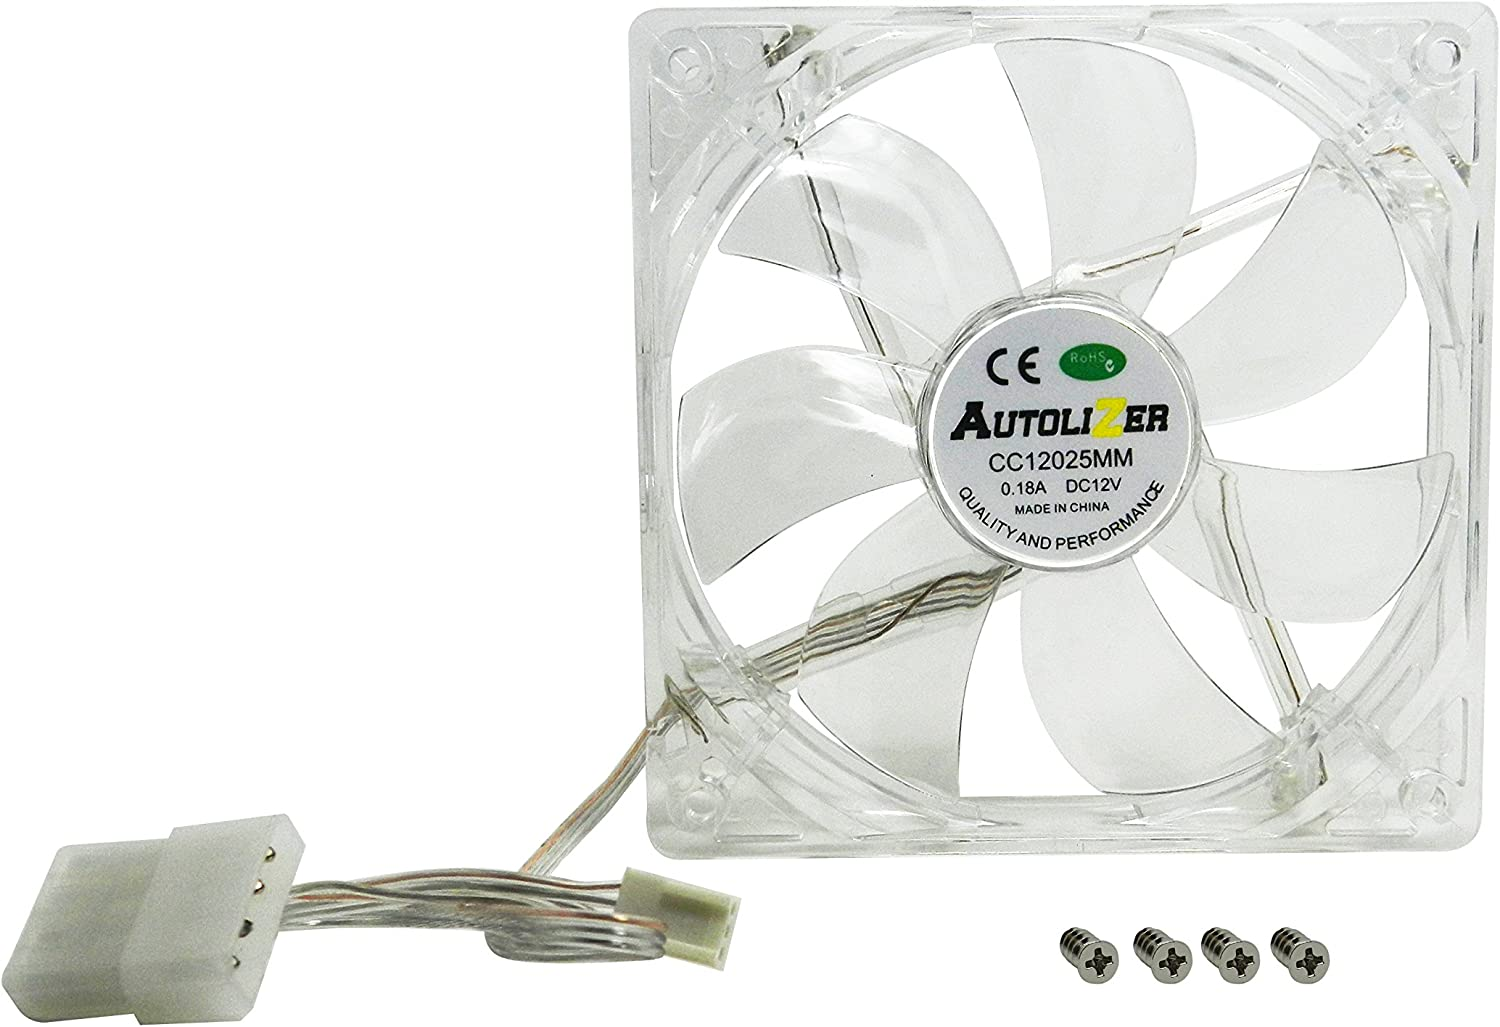 High Airflow and Transparent Clear White Quad 4-LEDs and Radiators Quite - 2 Years Warranty CPU Coolers Autolizer Sleeve Bearing 120mm Silent Cooling Fan for Computer PC Cases